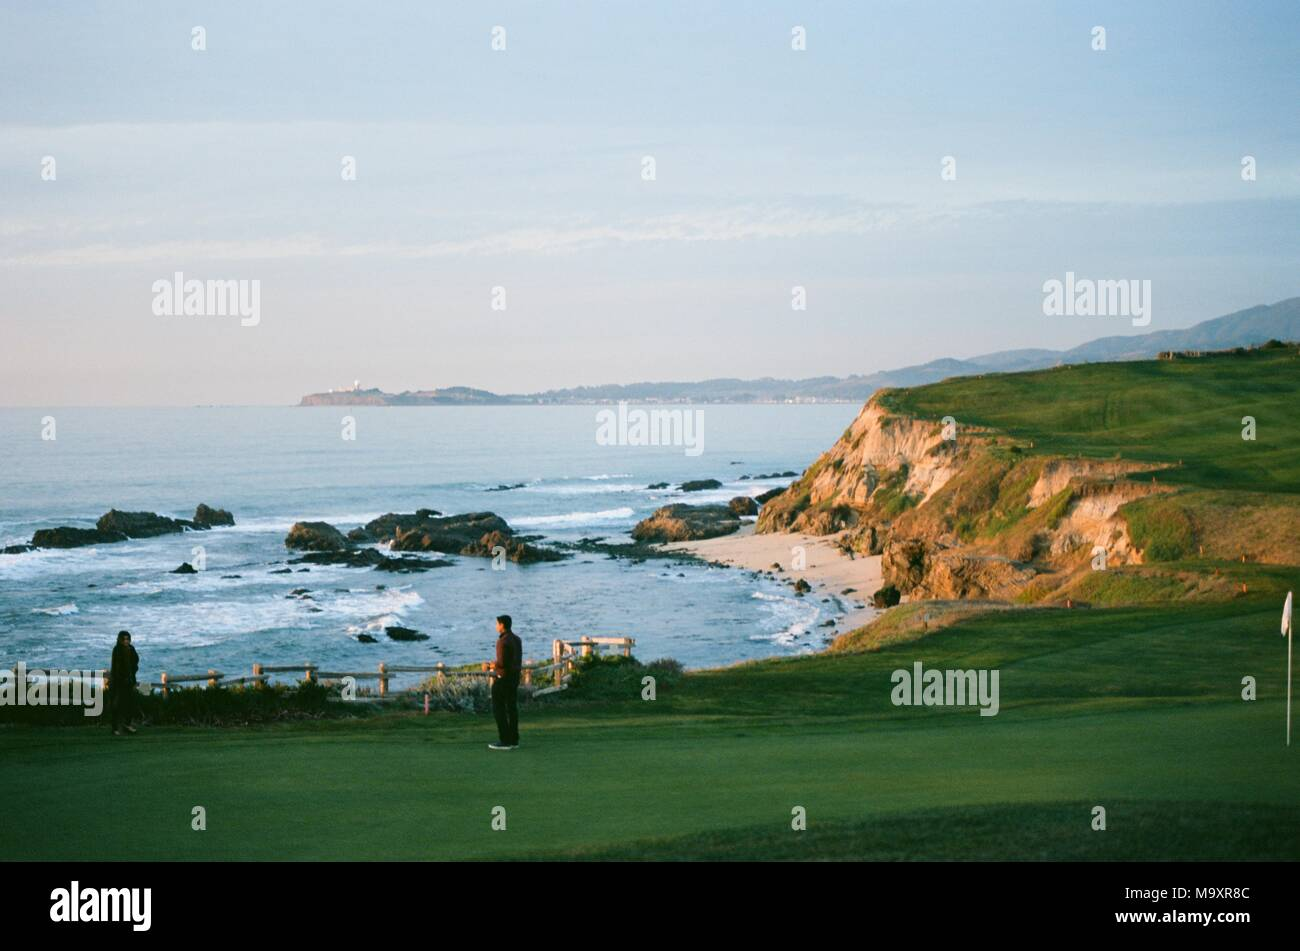 People stand along the greens of the Half Moon Bay Golf Links, a golf course in Half Moon Bay, California, at sunset, December 22, 2017. () - Stock Image